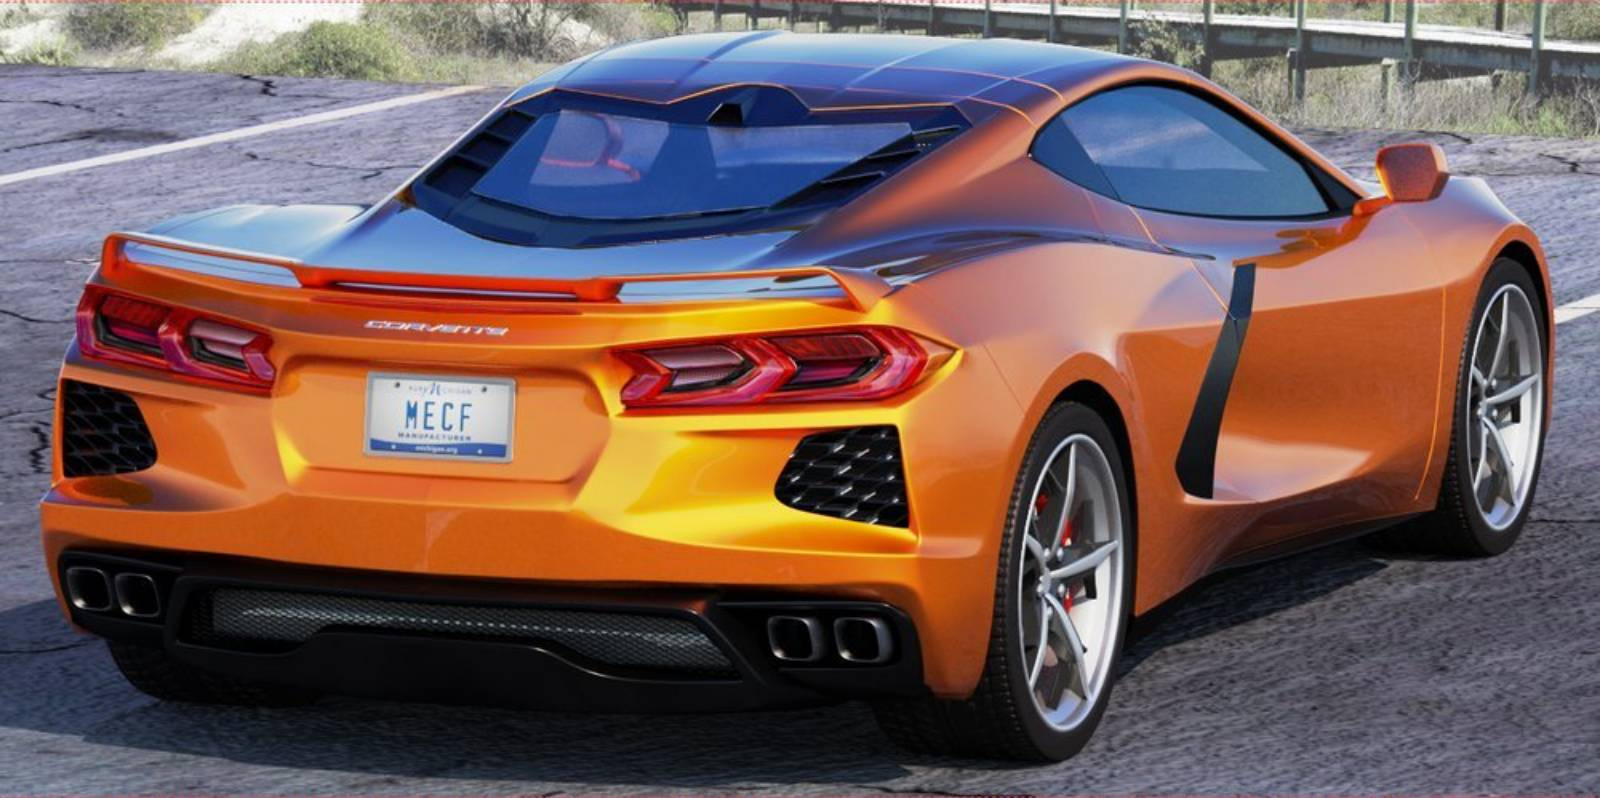 2020 Chevy Corvette C8 mid-engine rendering